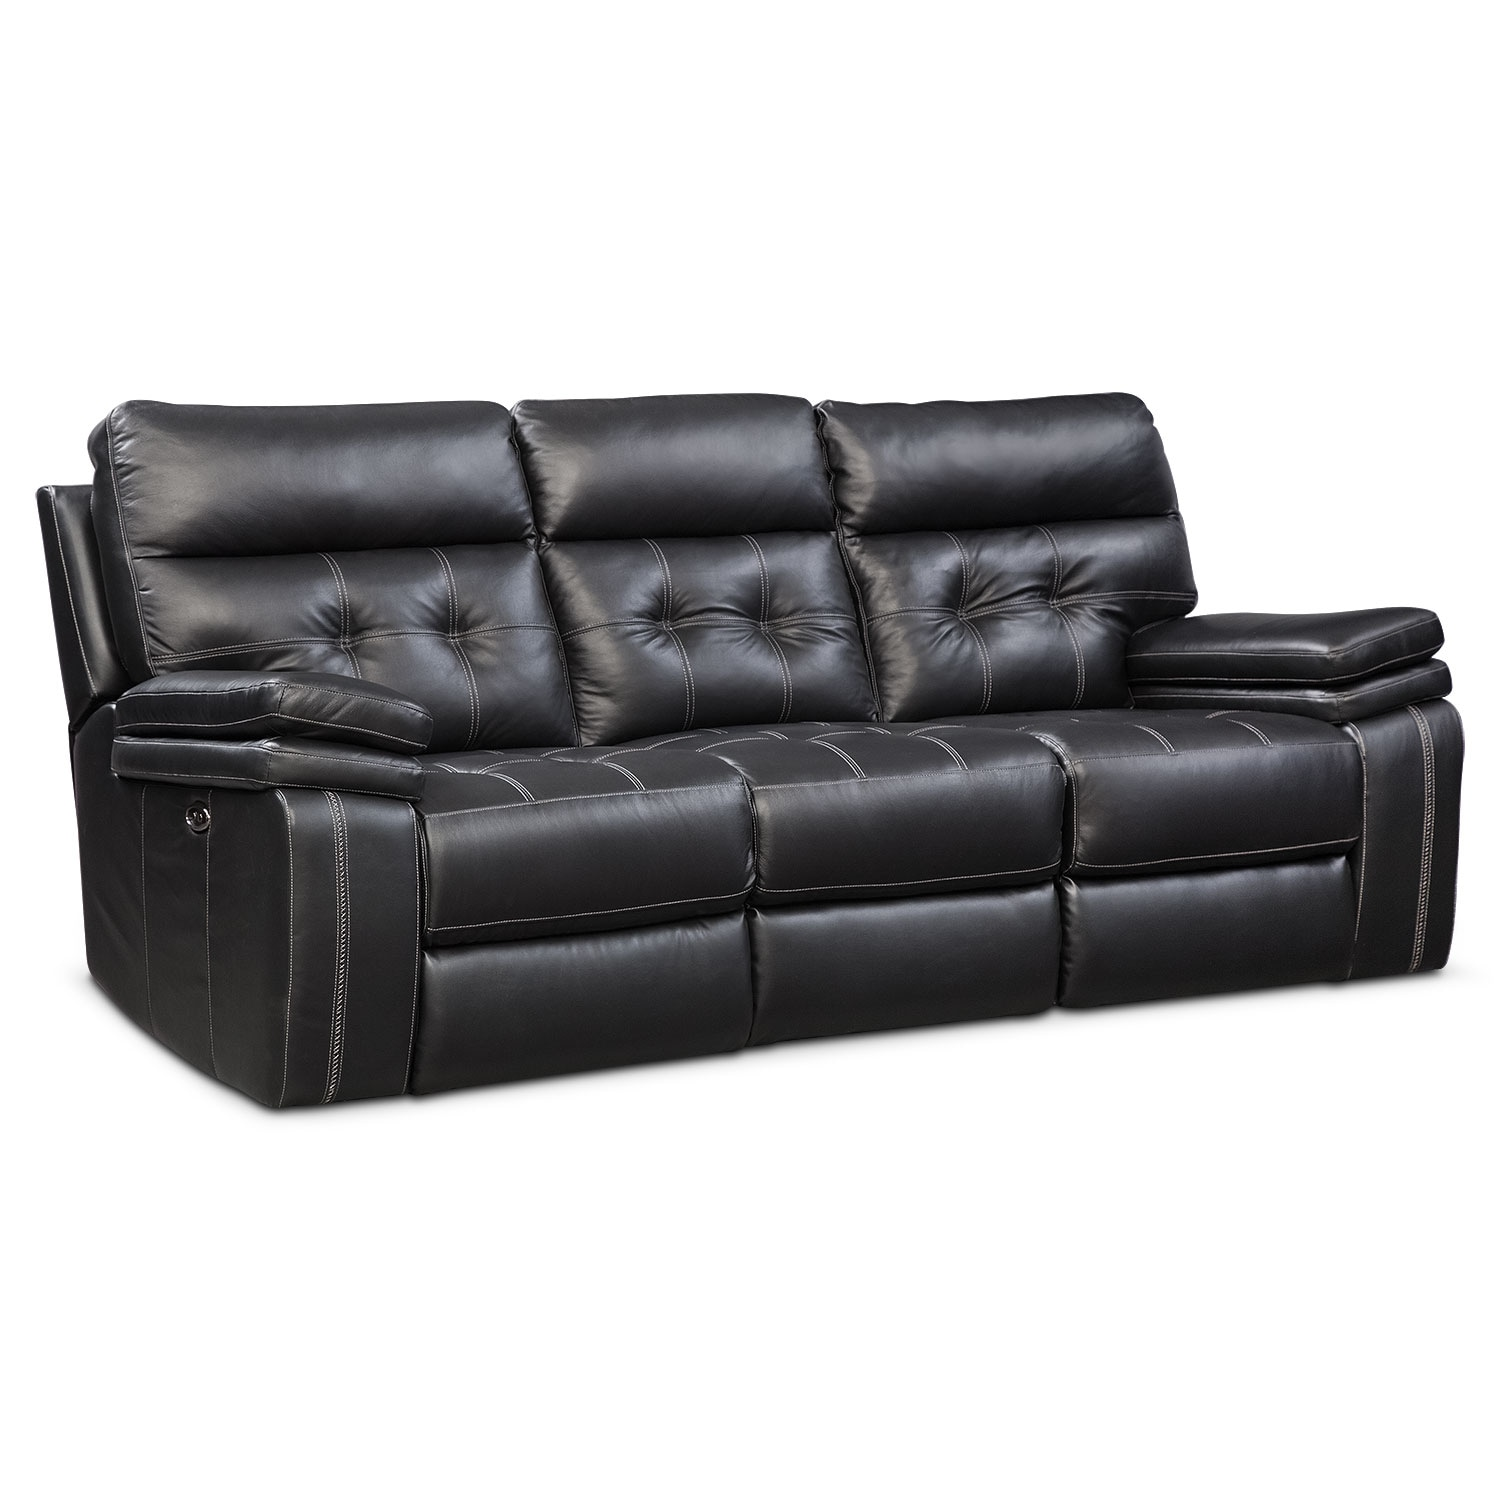 Brisco Power Reclining Sofa - Black by One80  sc 1 st  Value City Furniture & Brisco Power Reclining Sofa - Black | Value City Furniture islam-shia.org